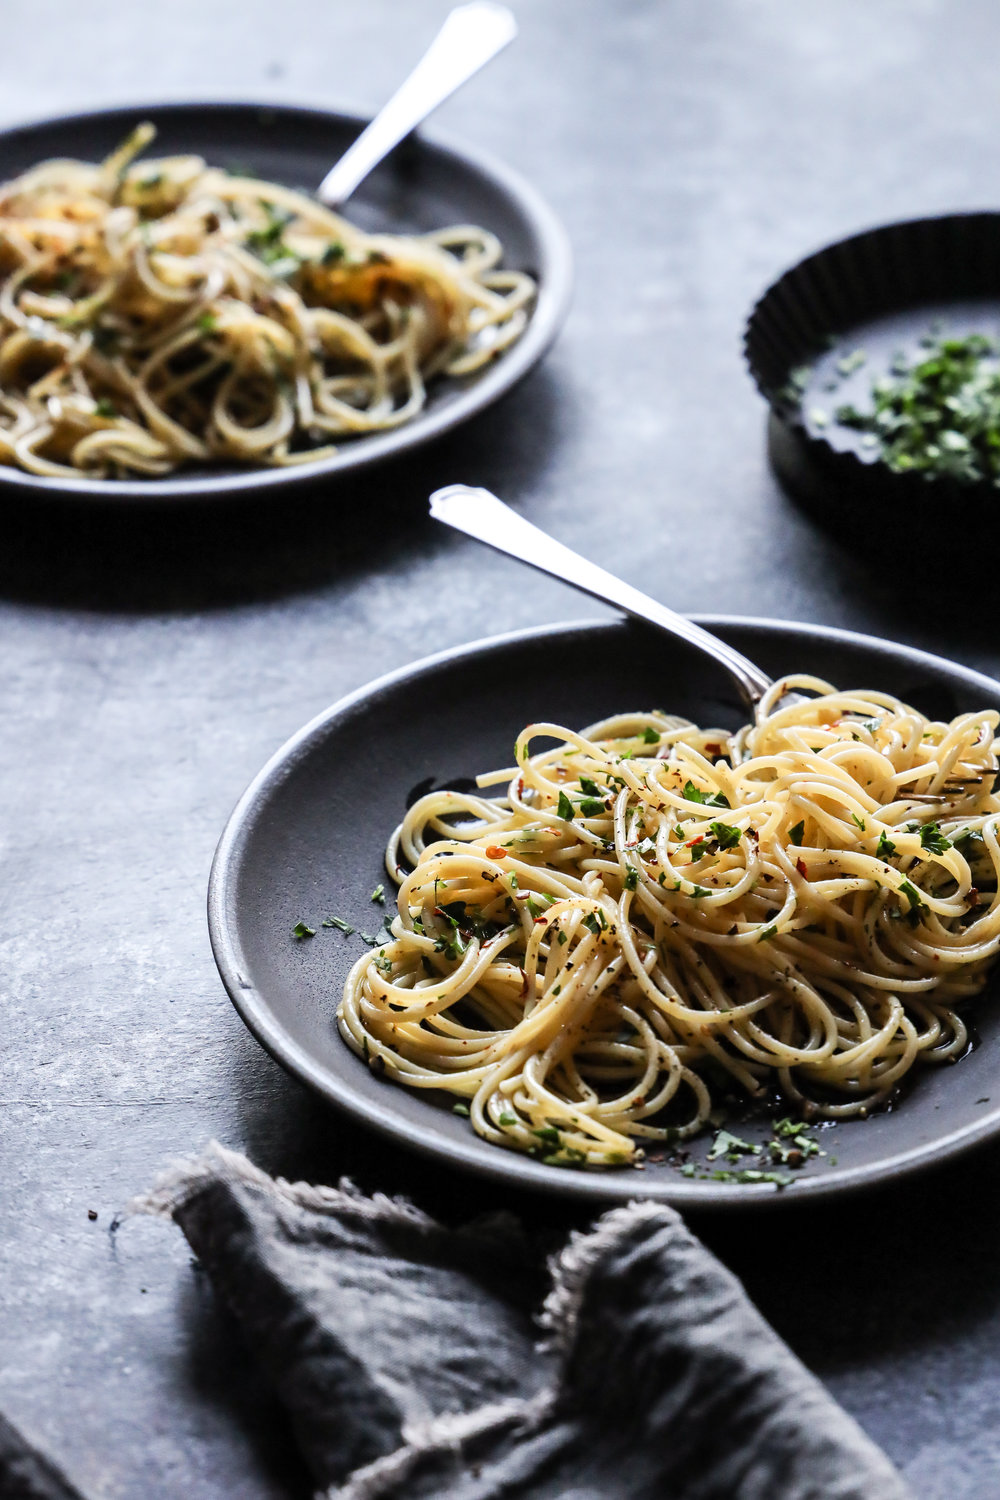 Spaghetti Aglio e Oglio, James Beard, Food Styling Judy Kim